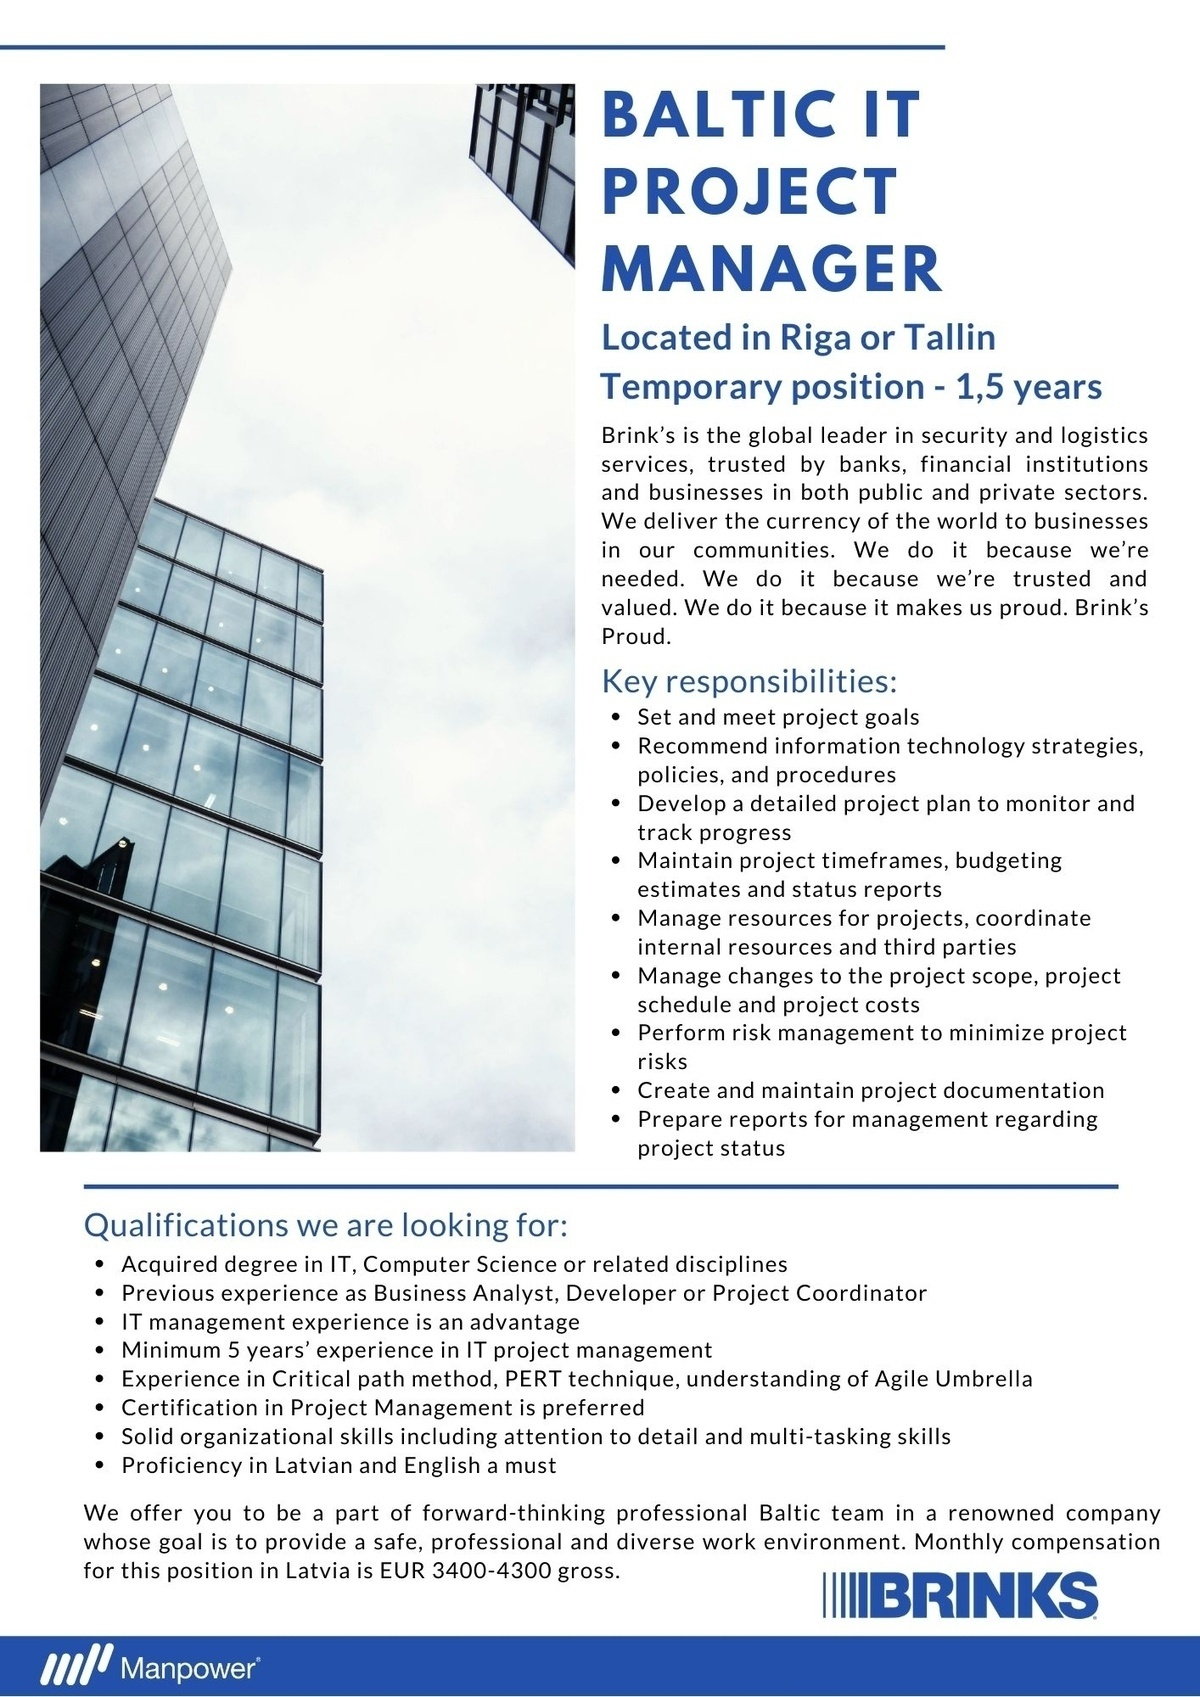 Manpower OÜ Baltic IT Project Manager